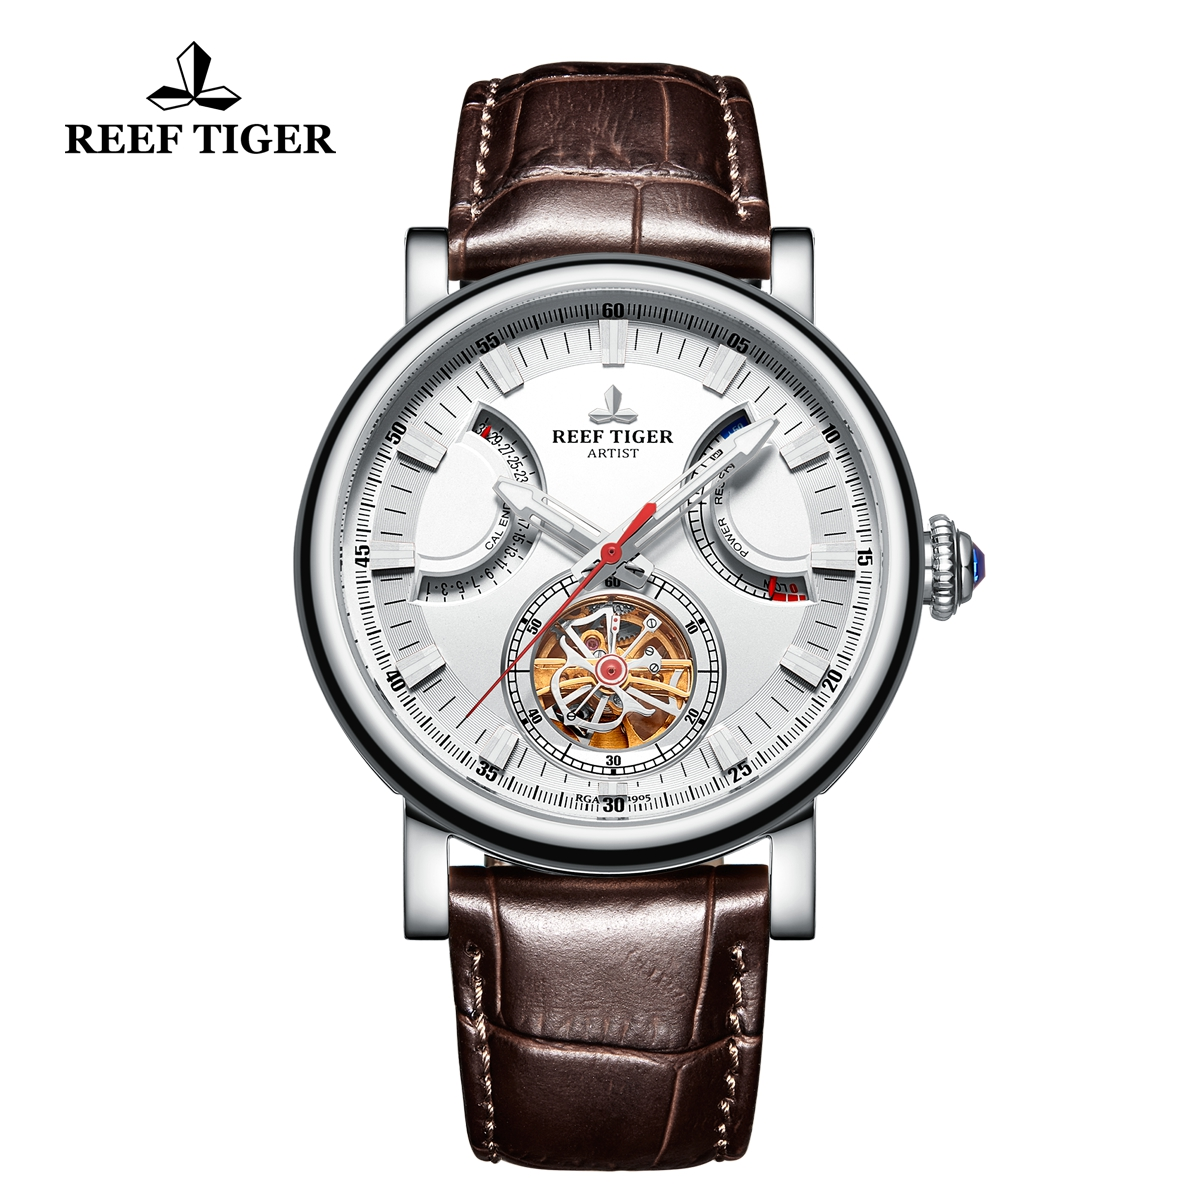 Reef Tiger Artist Photographer Solid Steel Brown Leather Strap White Dial Tourbillon Automatic Watch RGA1950-YWW